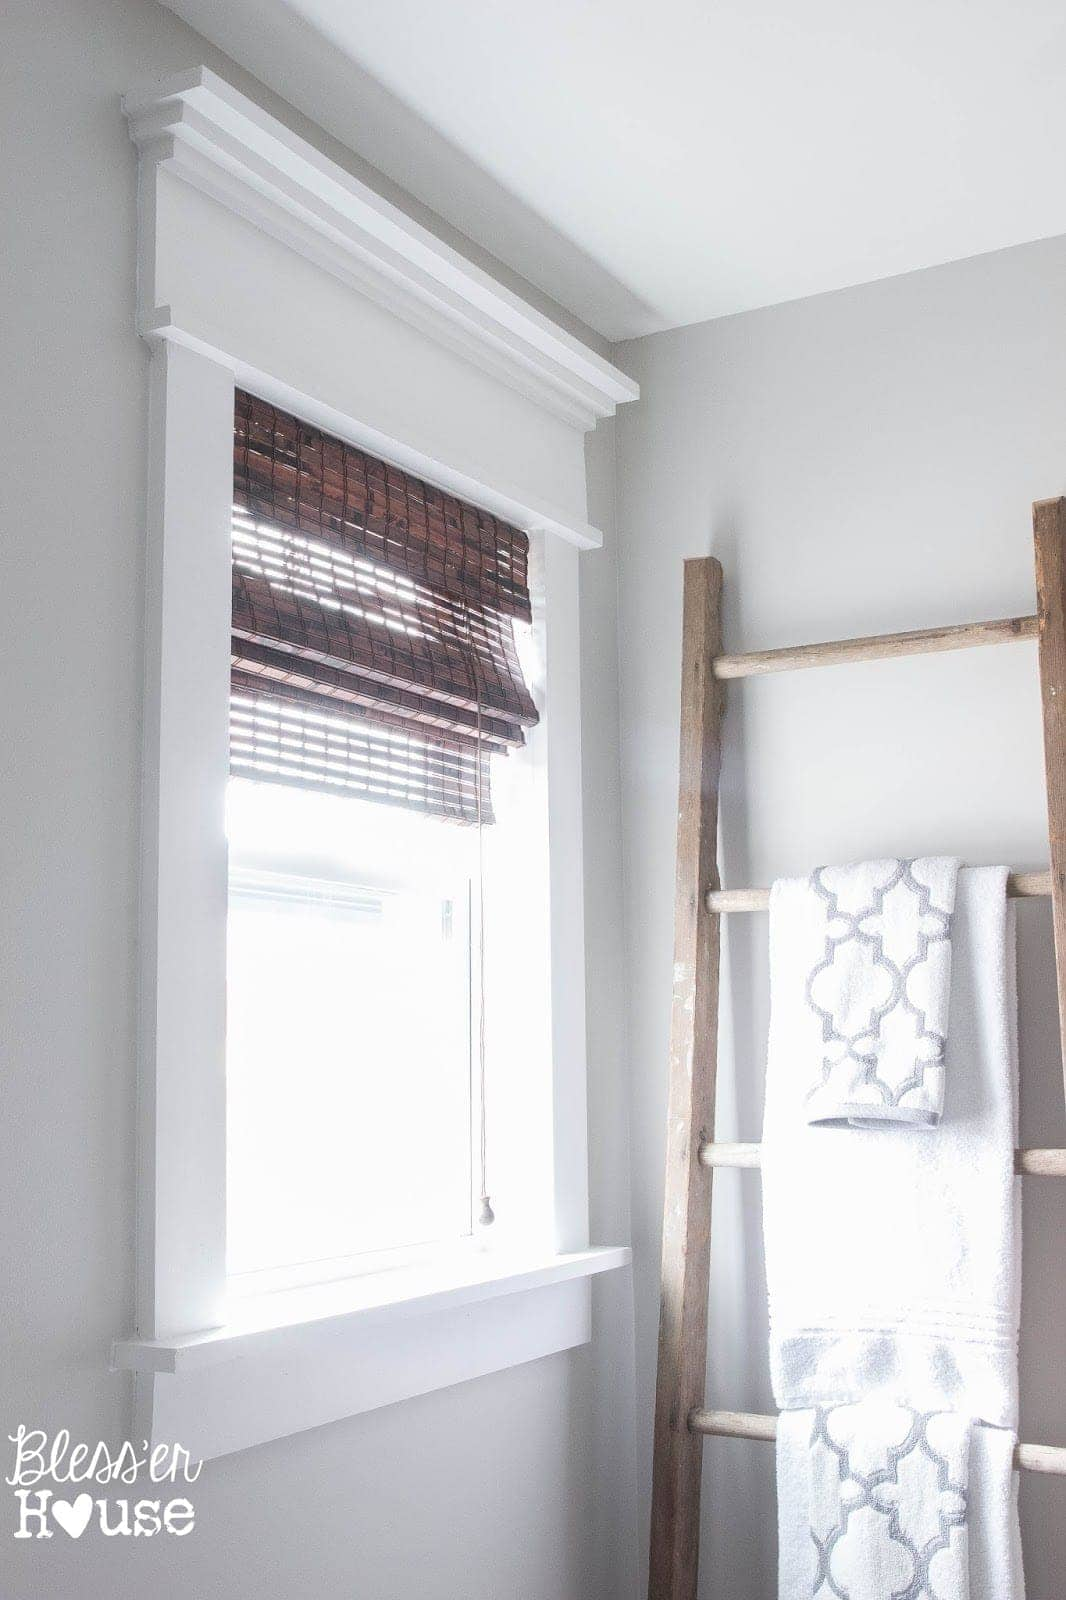 2 Simple Steps to Upgrade a Basic Window  Blesser House